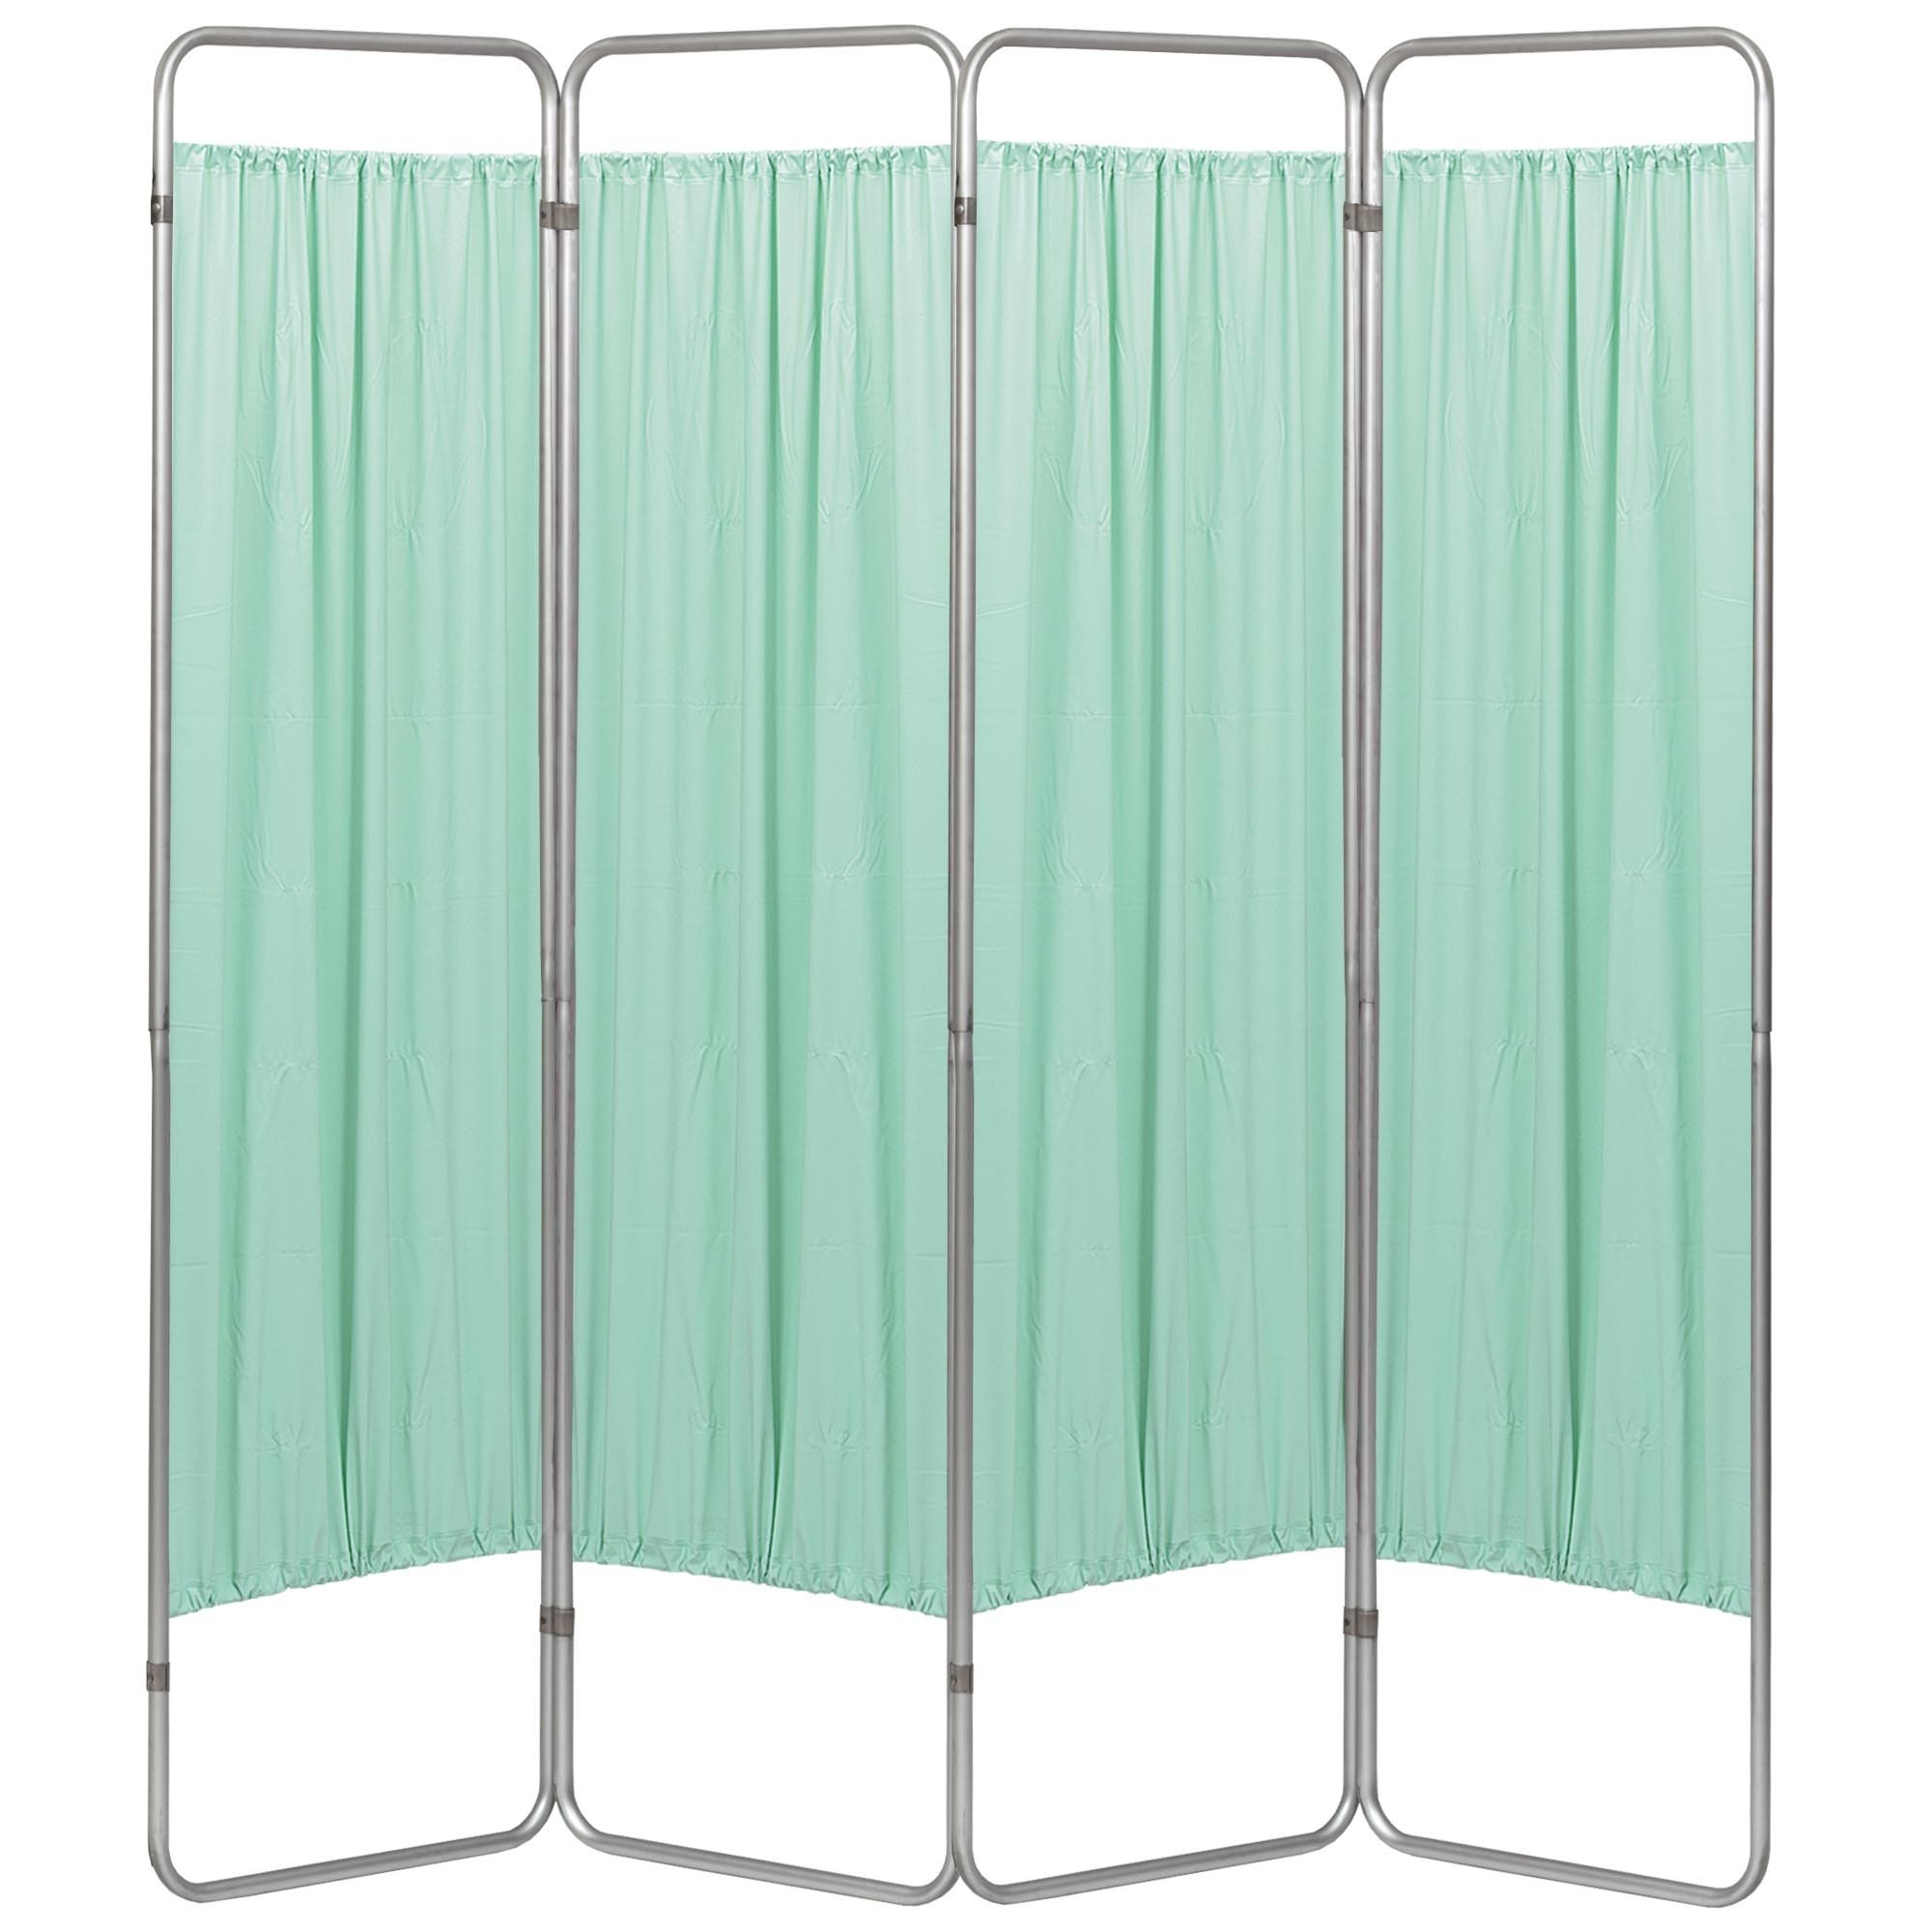 Economy 4 Section Folding Privacy Screen - Green Vinyl Screen Panel